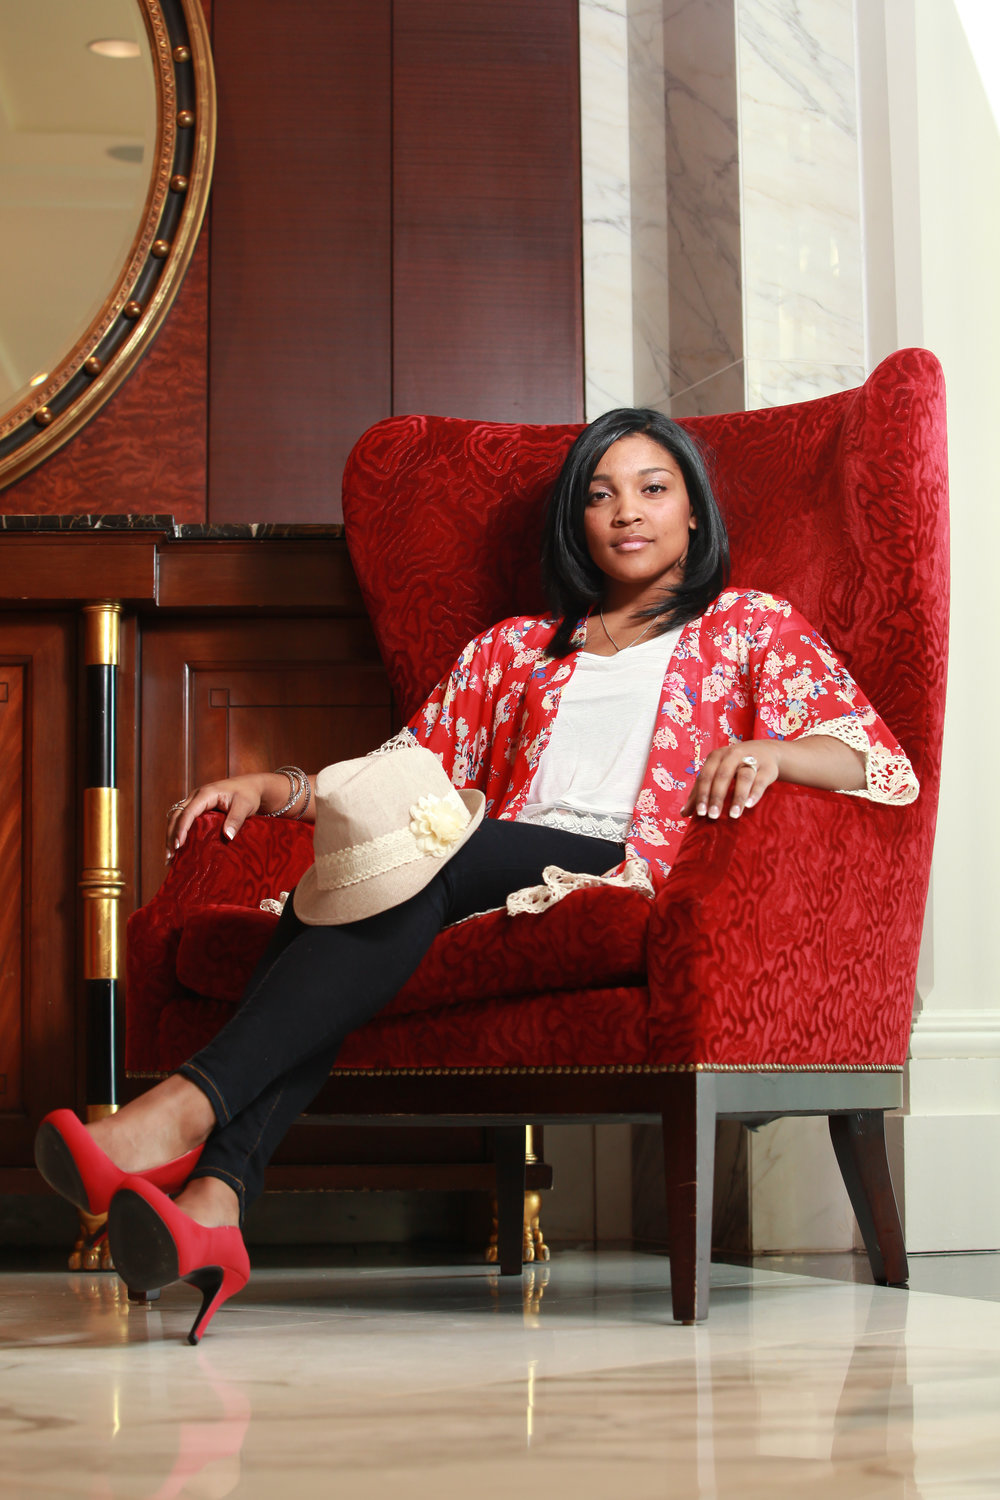 Janai in a red chair